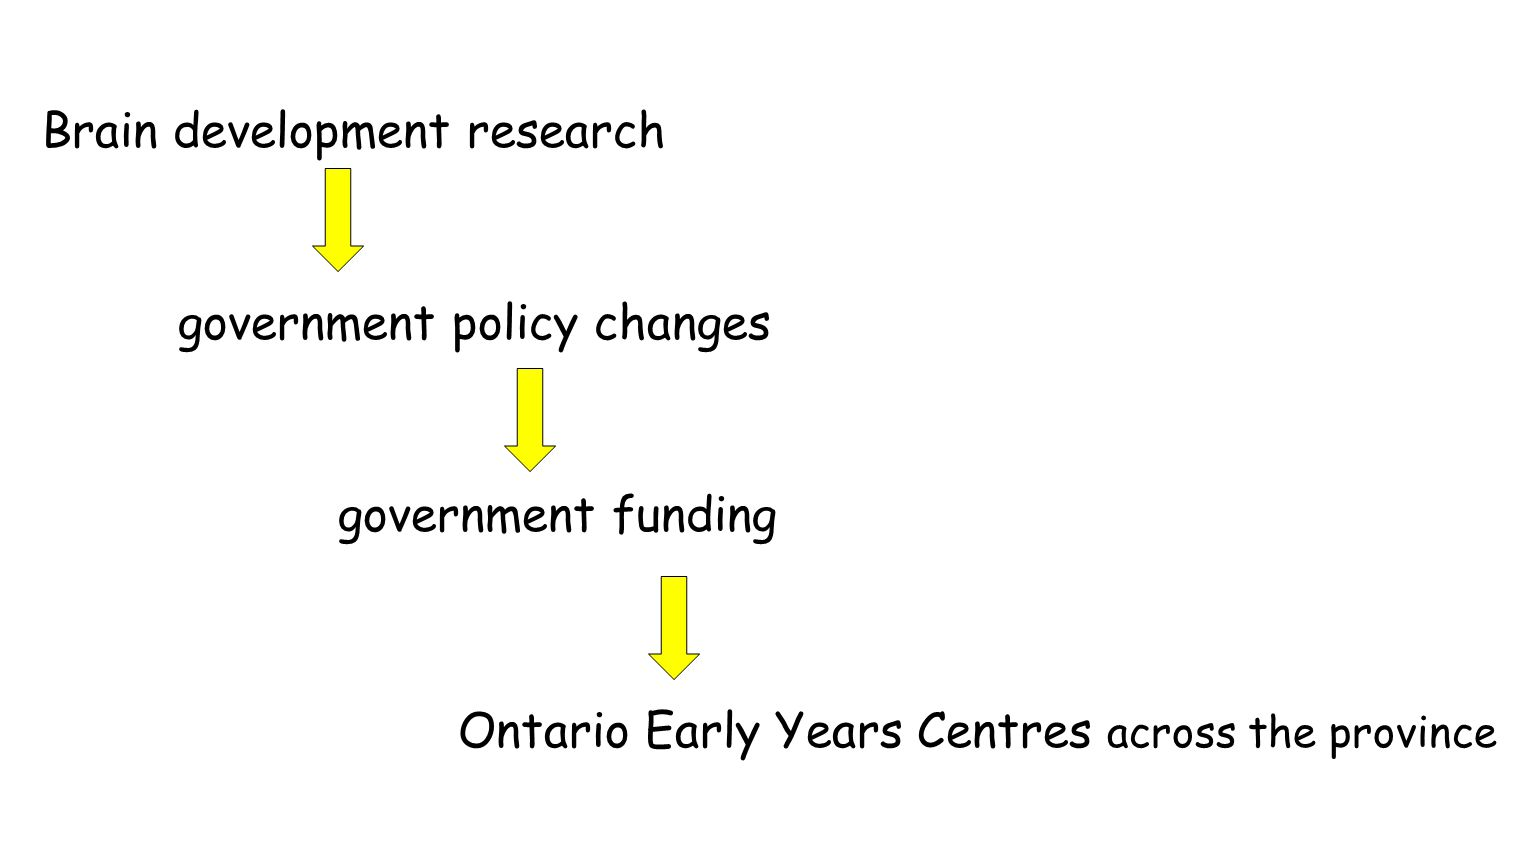 Brain development research government policy changes government funding Ontario Early Years Centres across the province